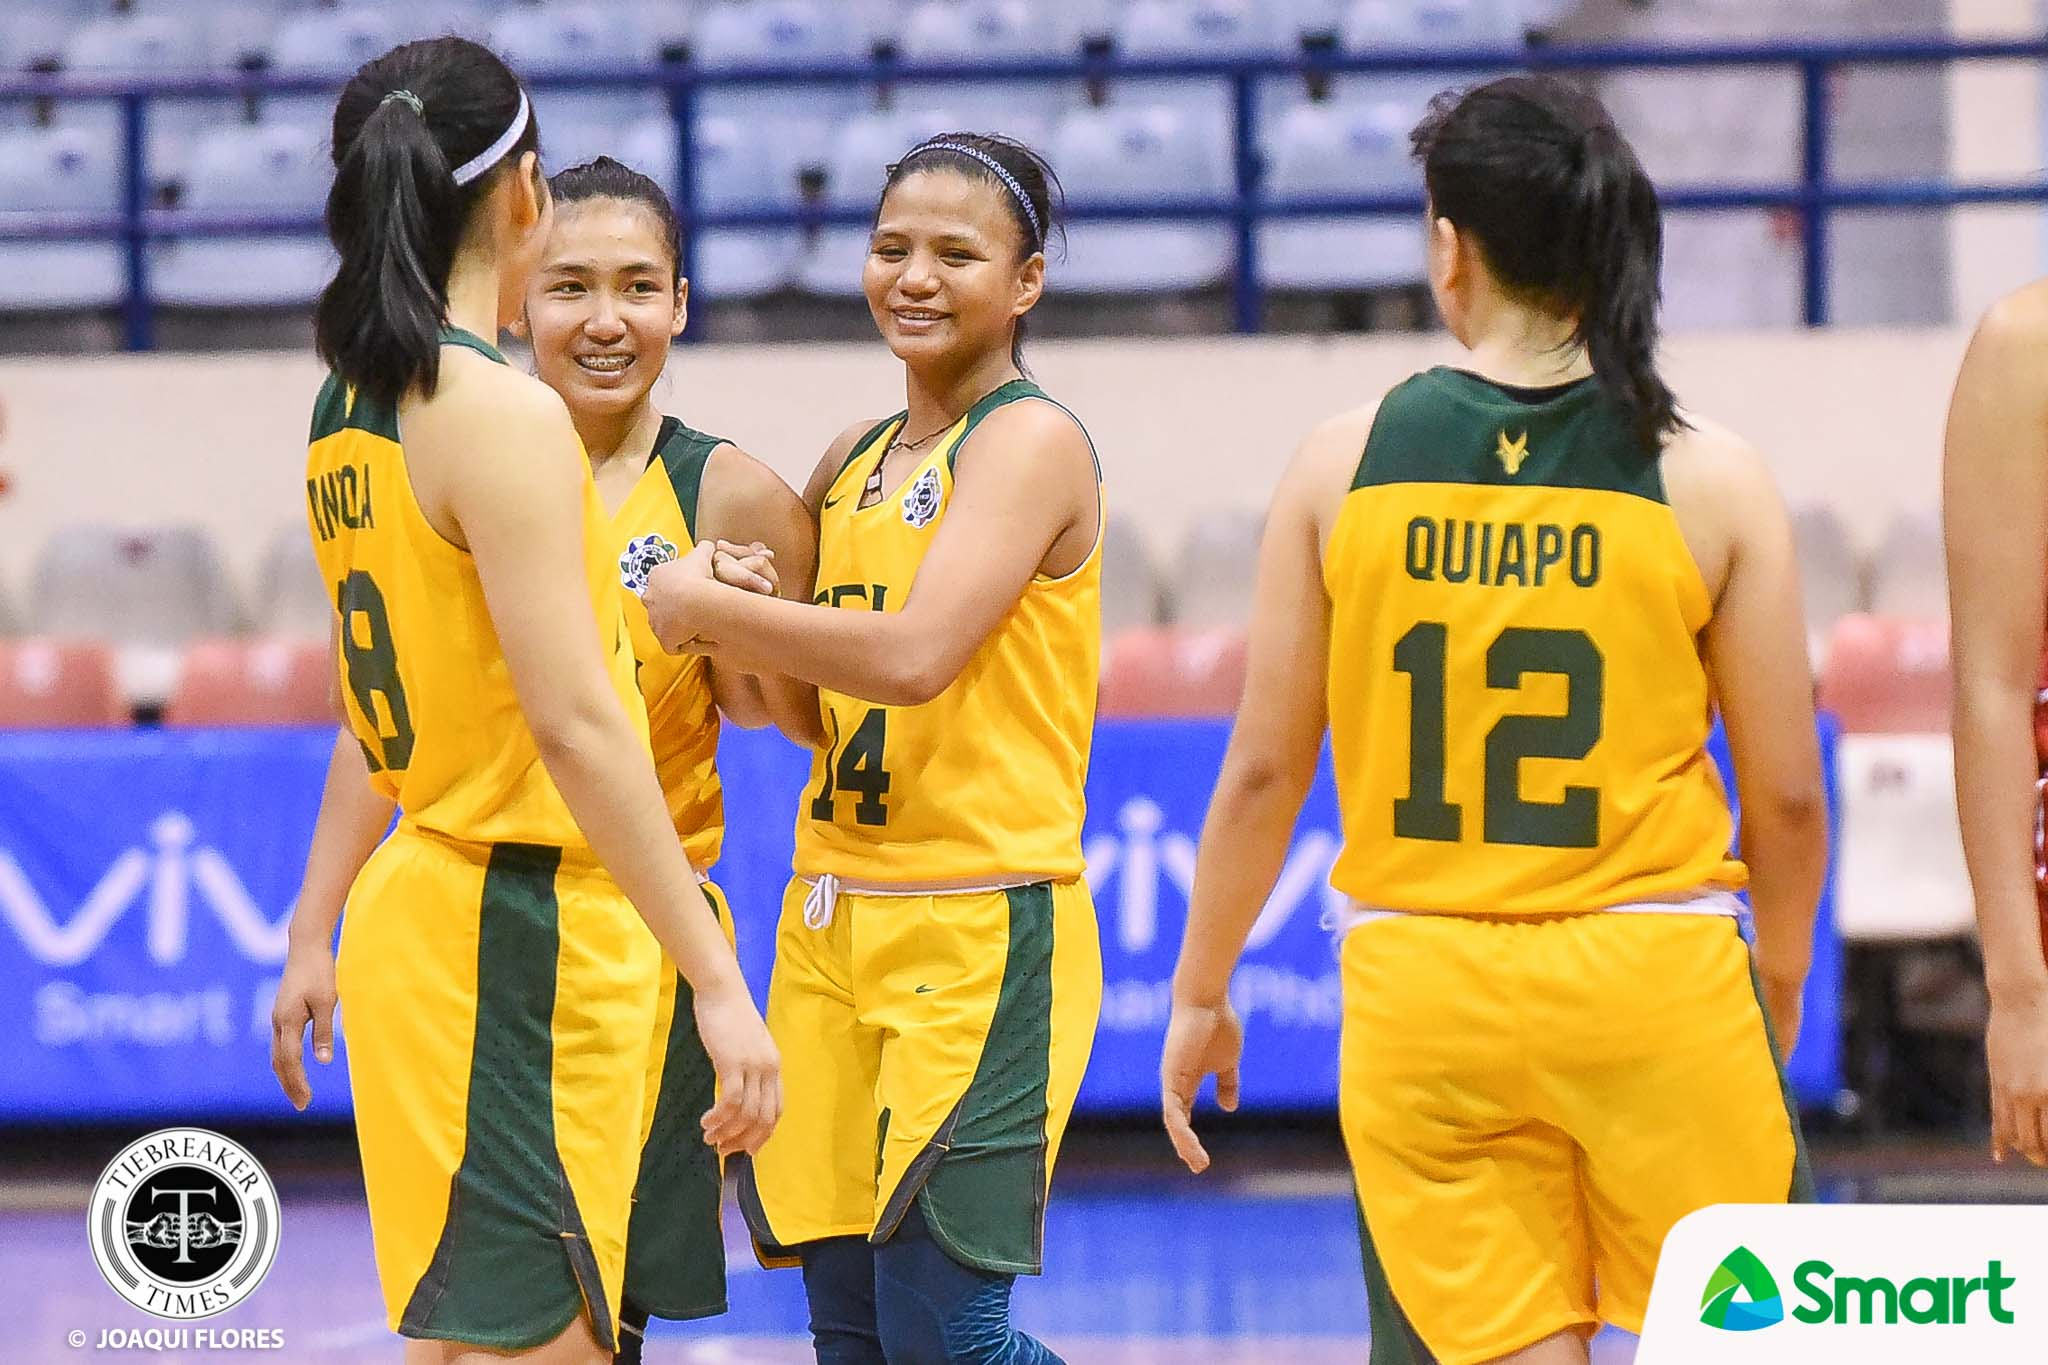 Tiebreaker Times FEU survives Clare Castro ejection, UE to maintain solo second Basketball FEU News UAAP UE  Valerie Mamaril UE Women's Basketball UAAP Season 81 Women's Basketball UAAP Season 81 Princess Pedregosa Princess Ganade Joel Sta. Mina FEU Women's Volleyball Christine Cortizano Anna Requiron Aileen Lebornio